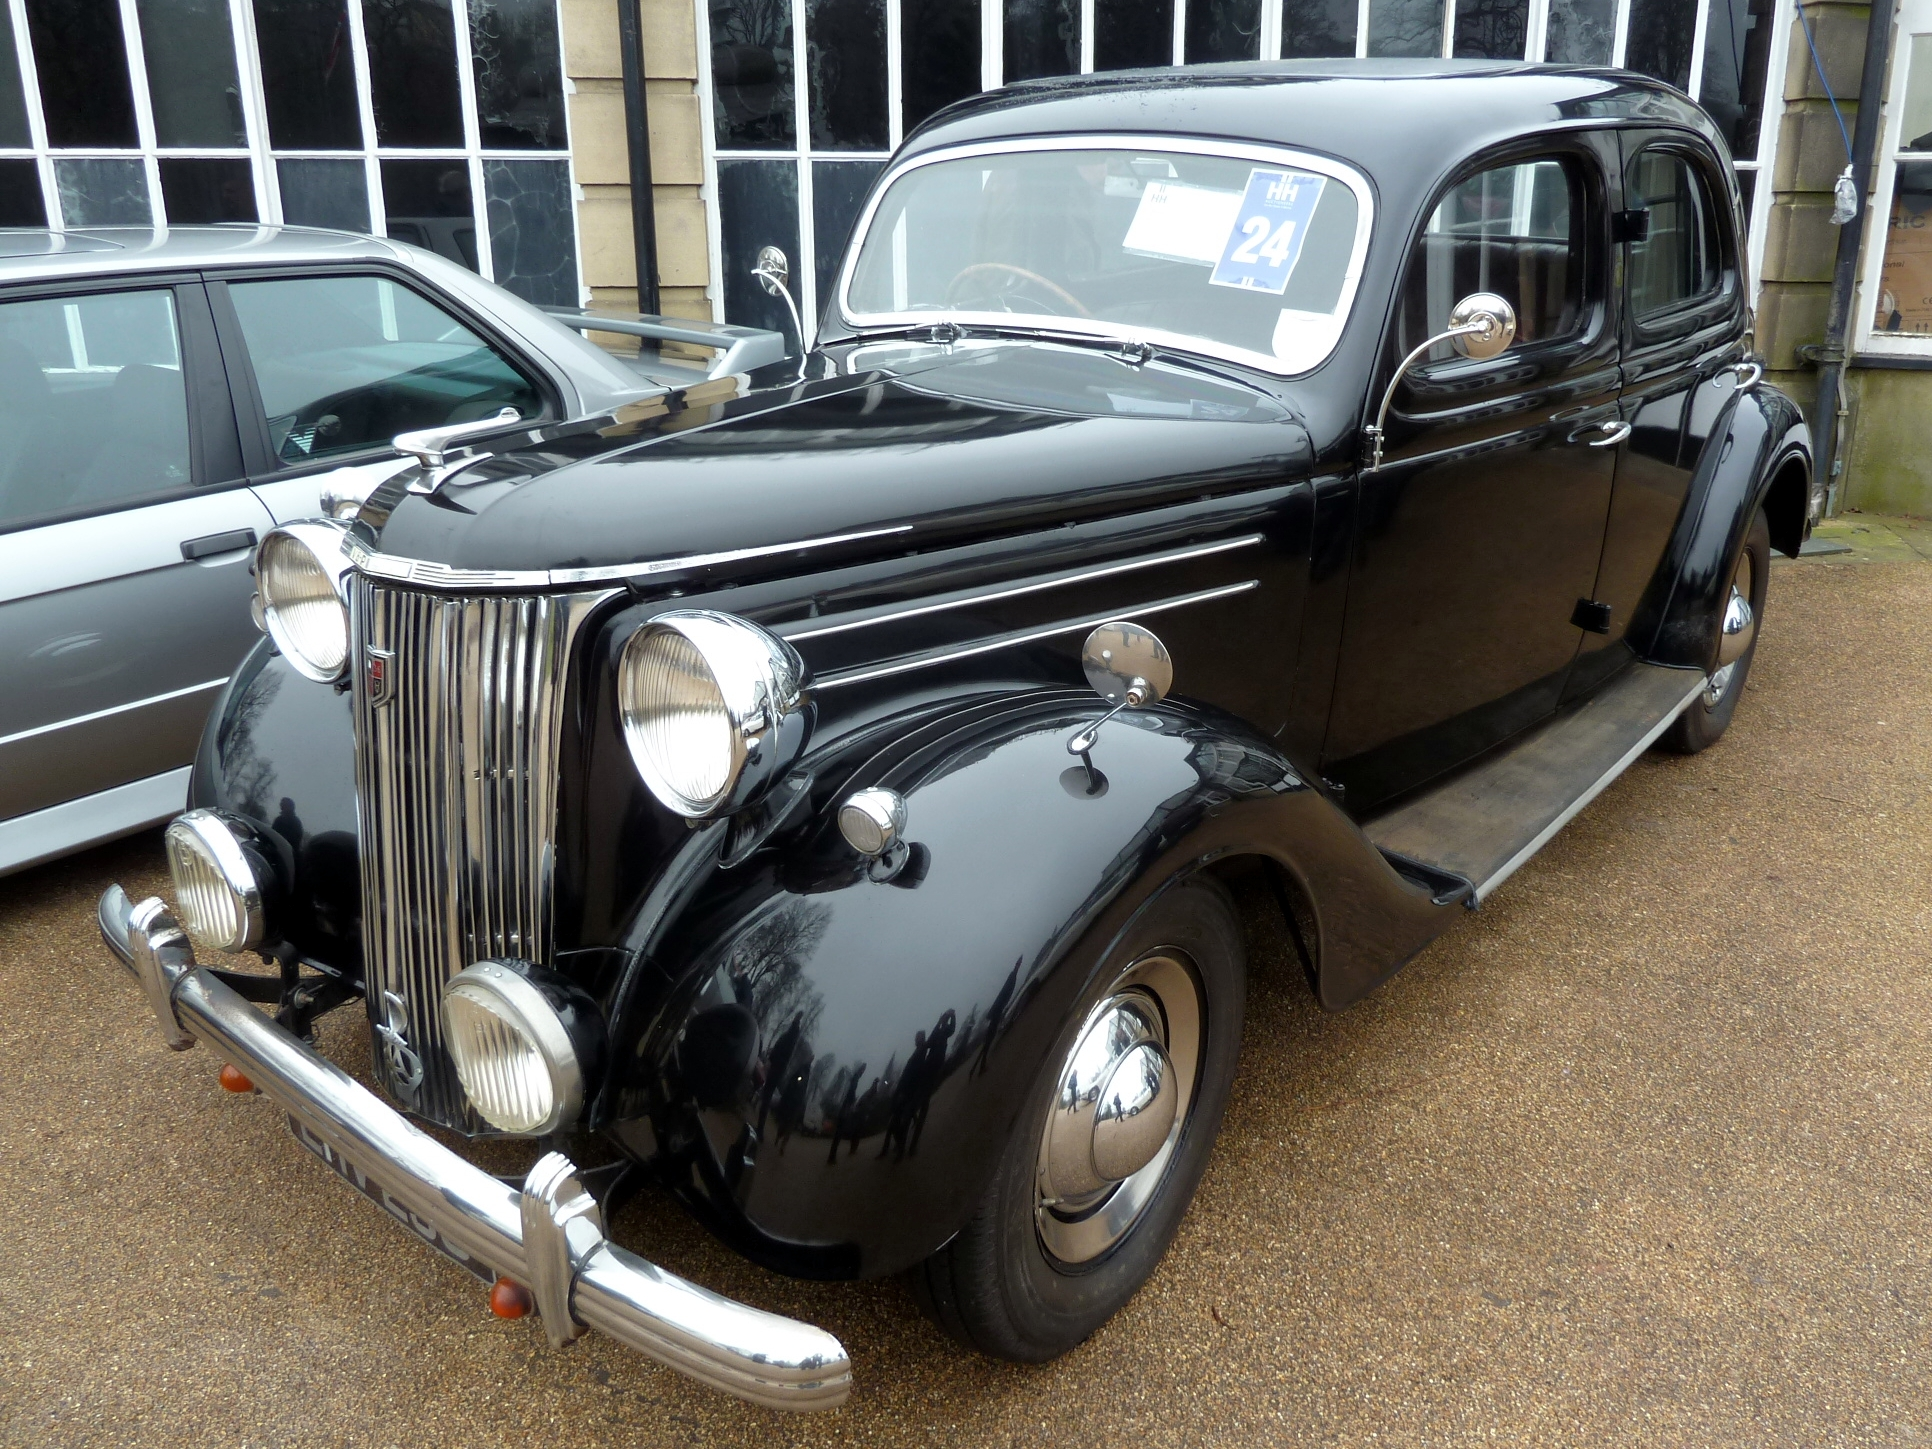 Fileford v8 pilot 1951 ehv 290 8513025725 jpg